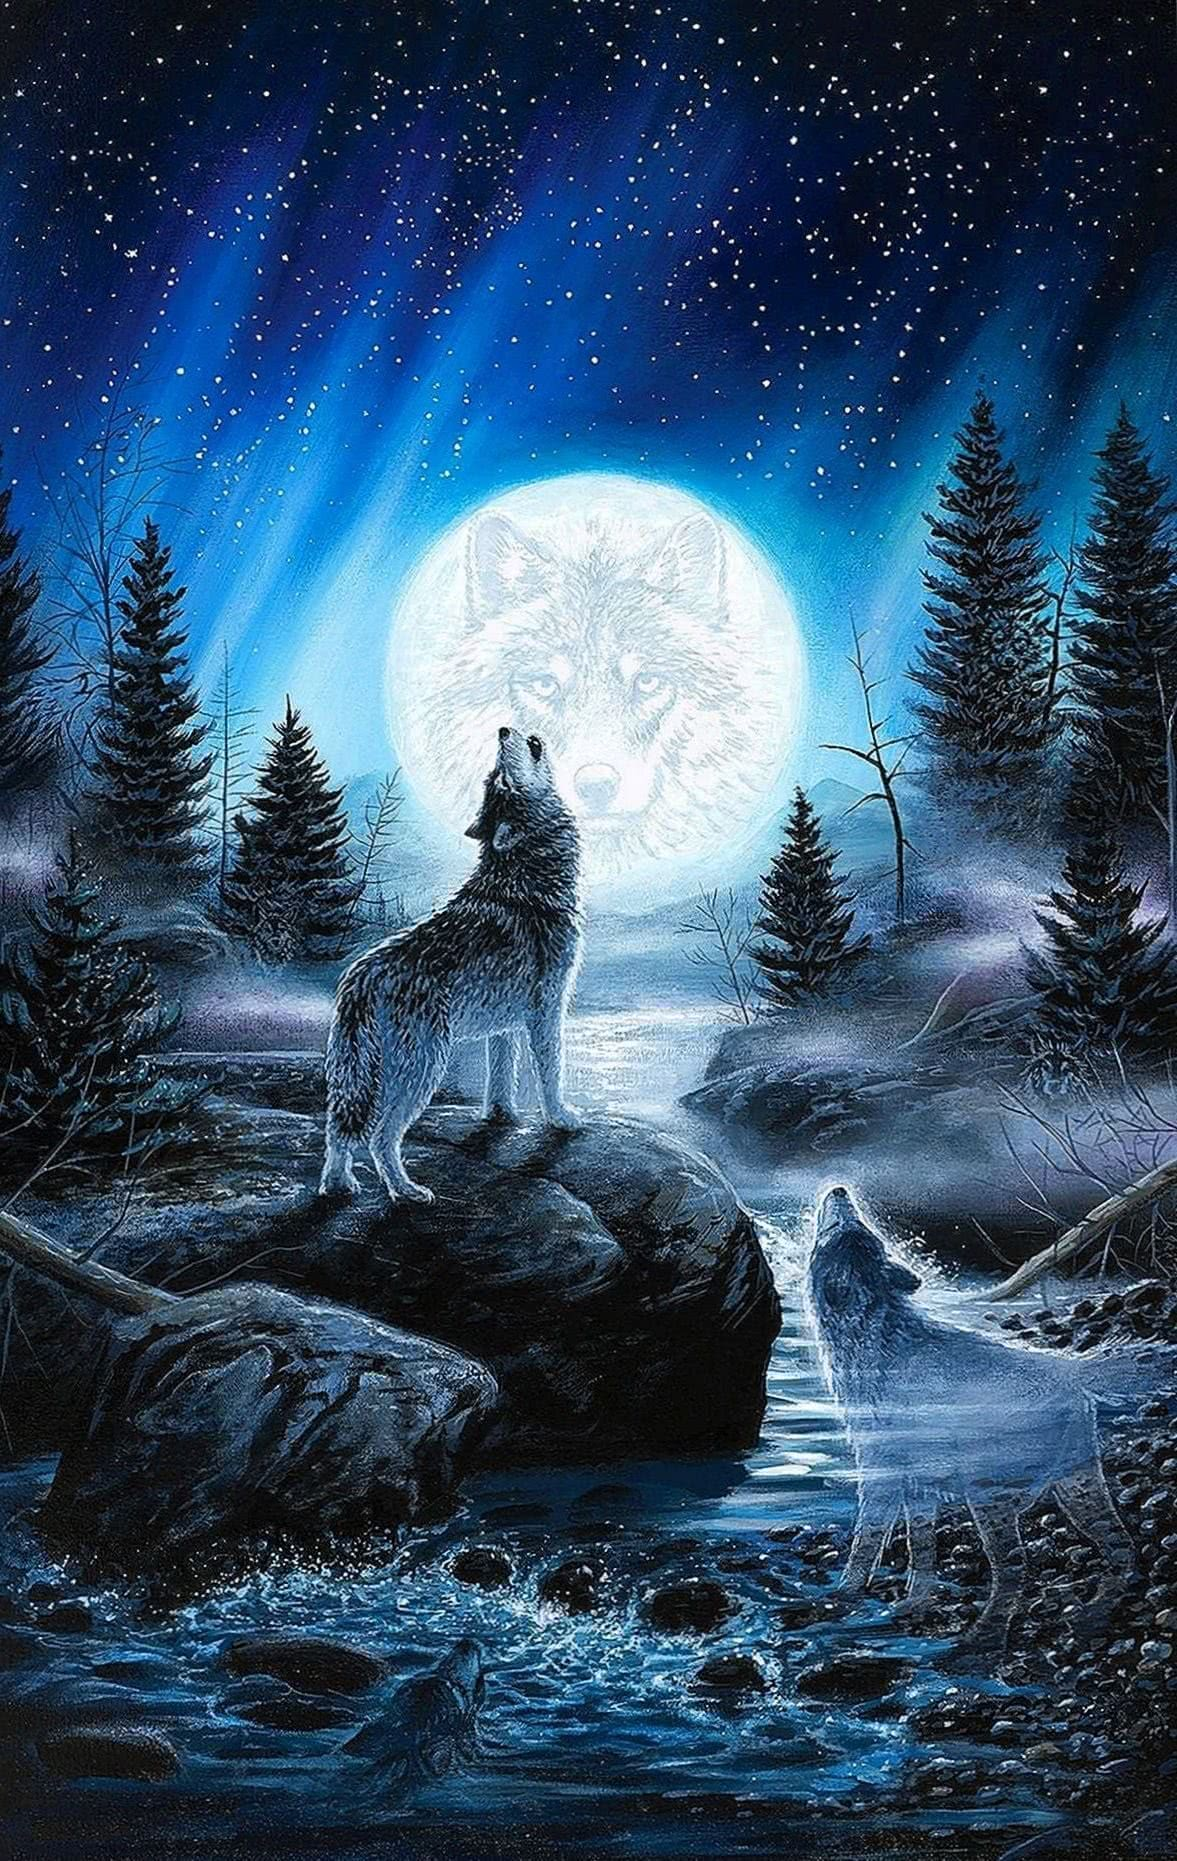 howling wolf wallpaper iphone iphonewallpapers wolf 1 17 wolf wallpapers.pro